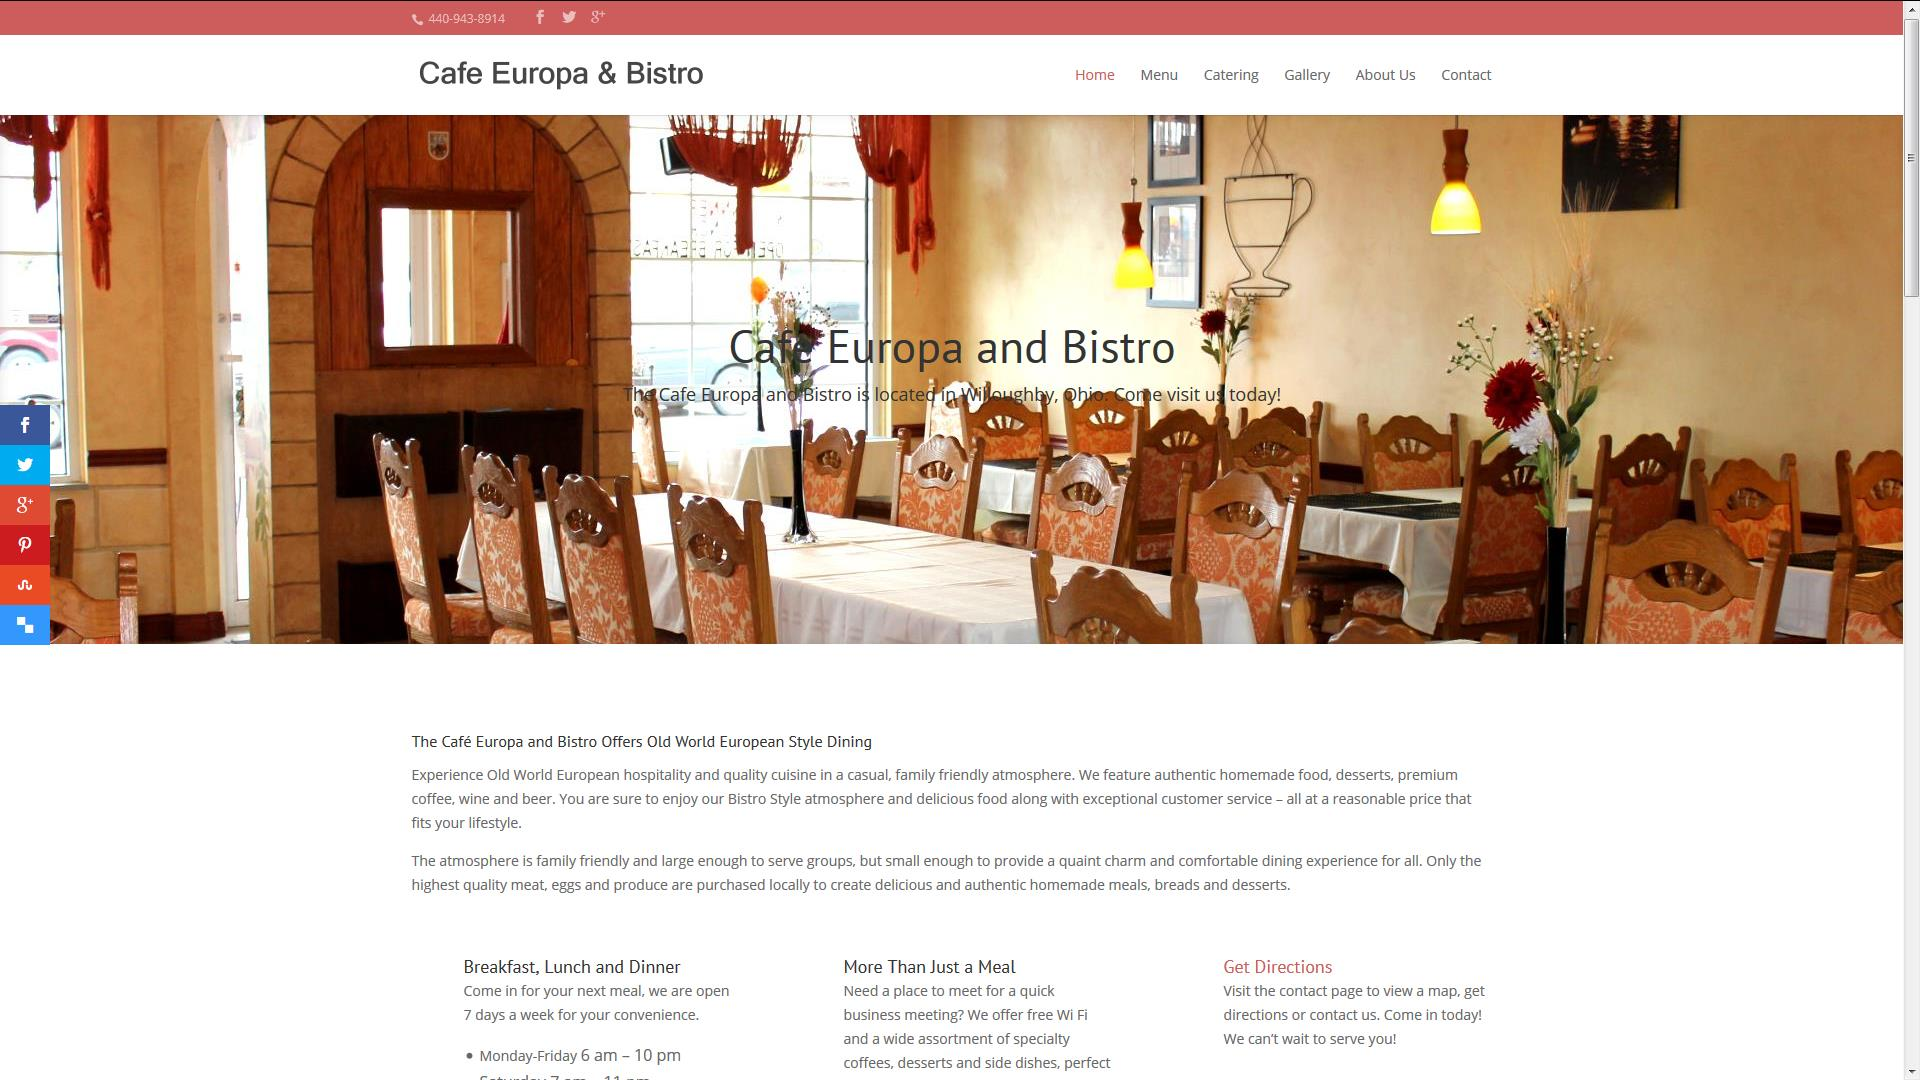 Cafe Europa and Bistro